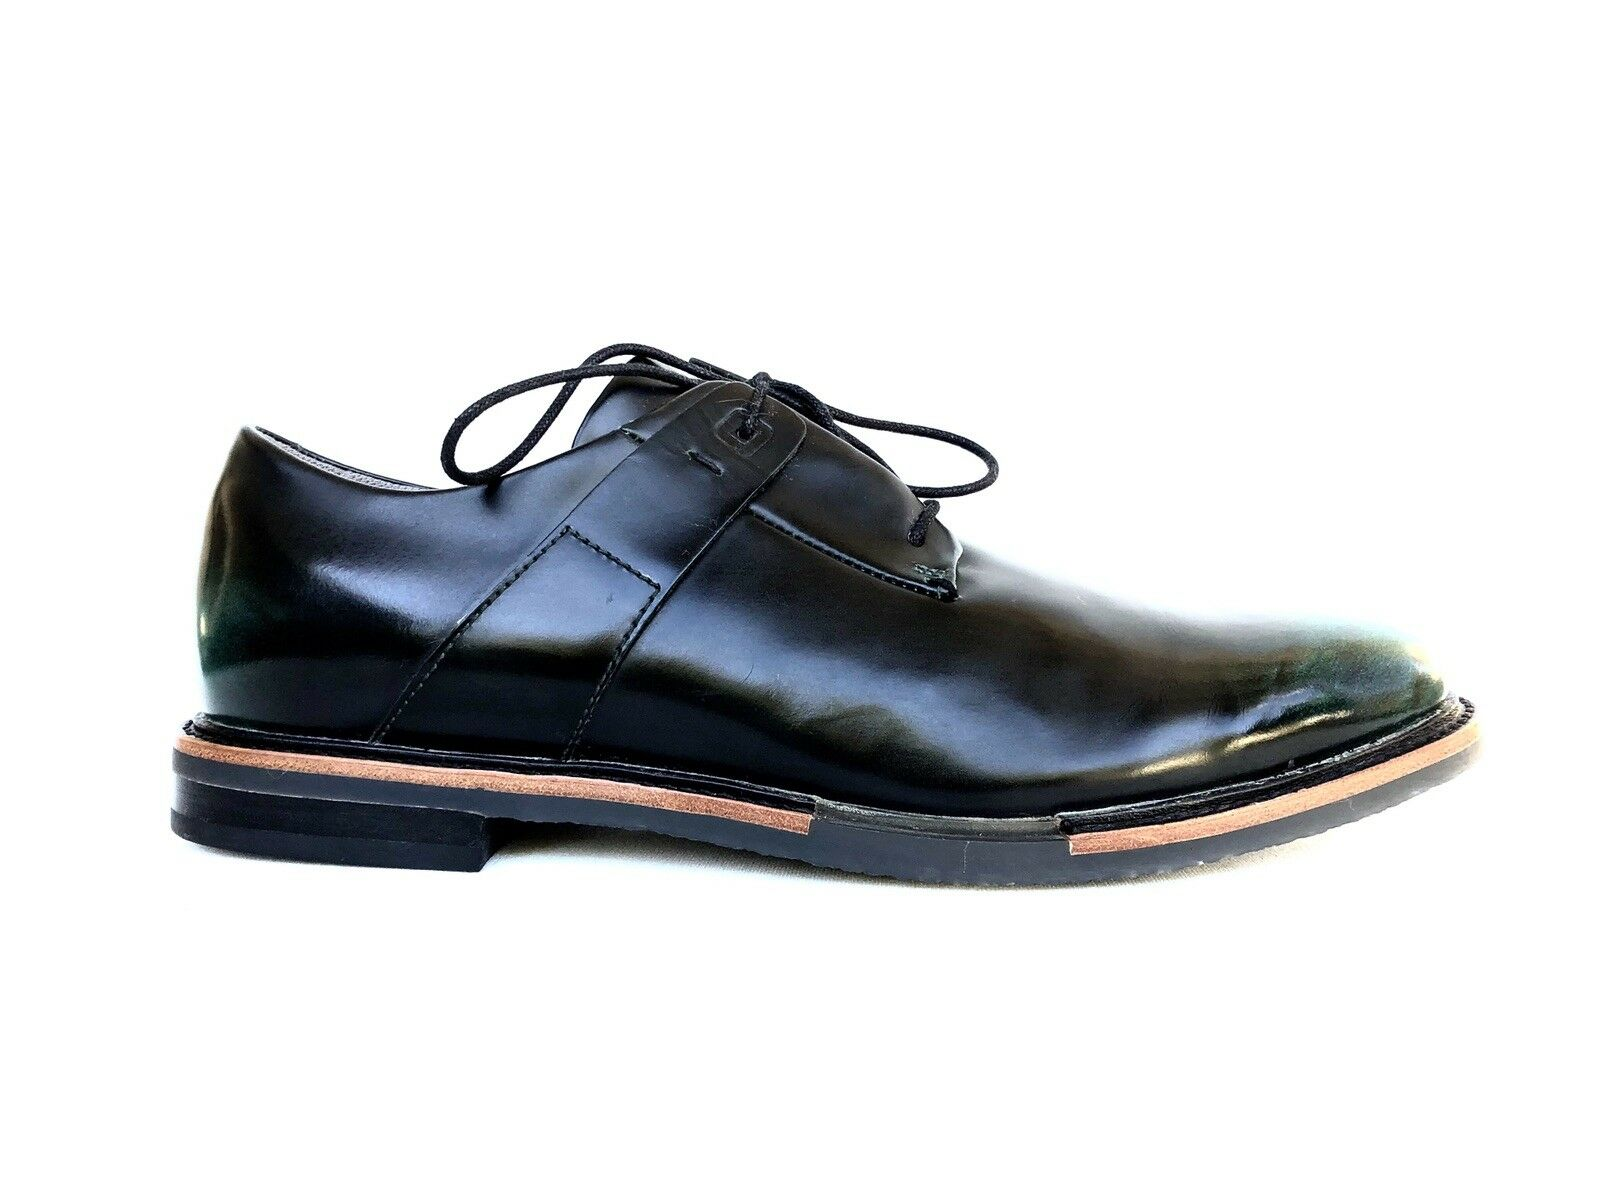 TSUBO Ombre Black Green Casual Oxford Lace Up Men shoes Sz 8M